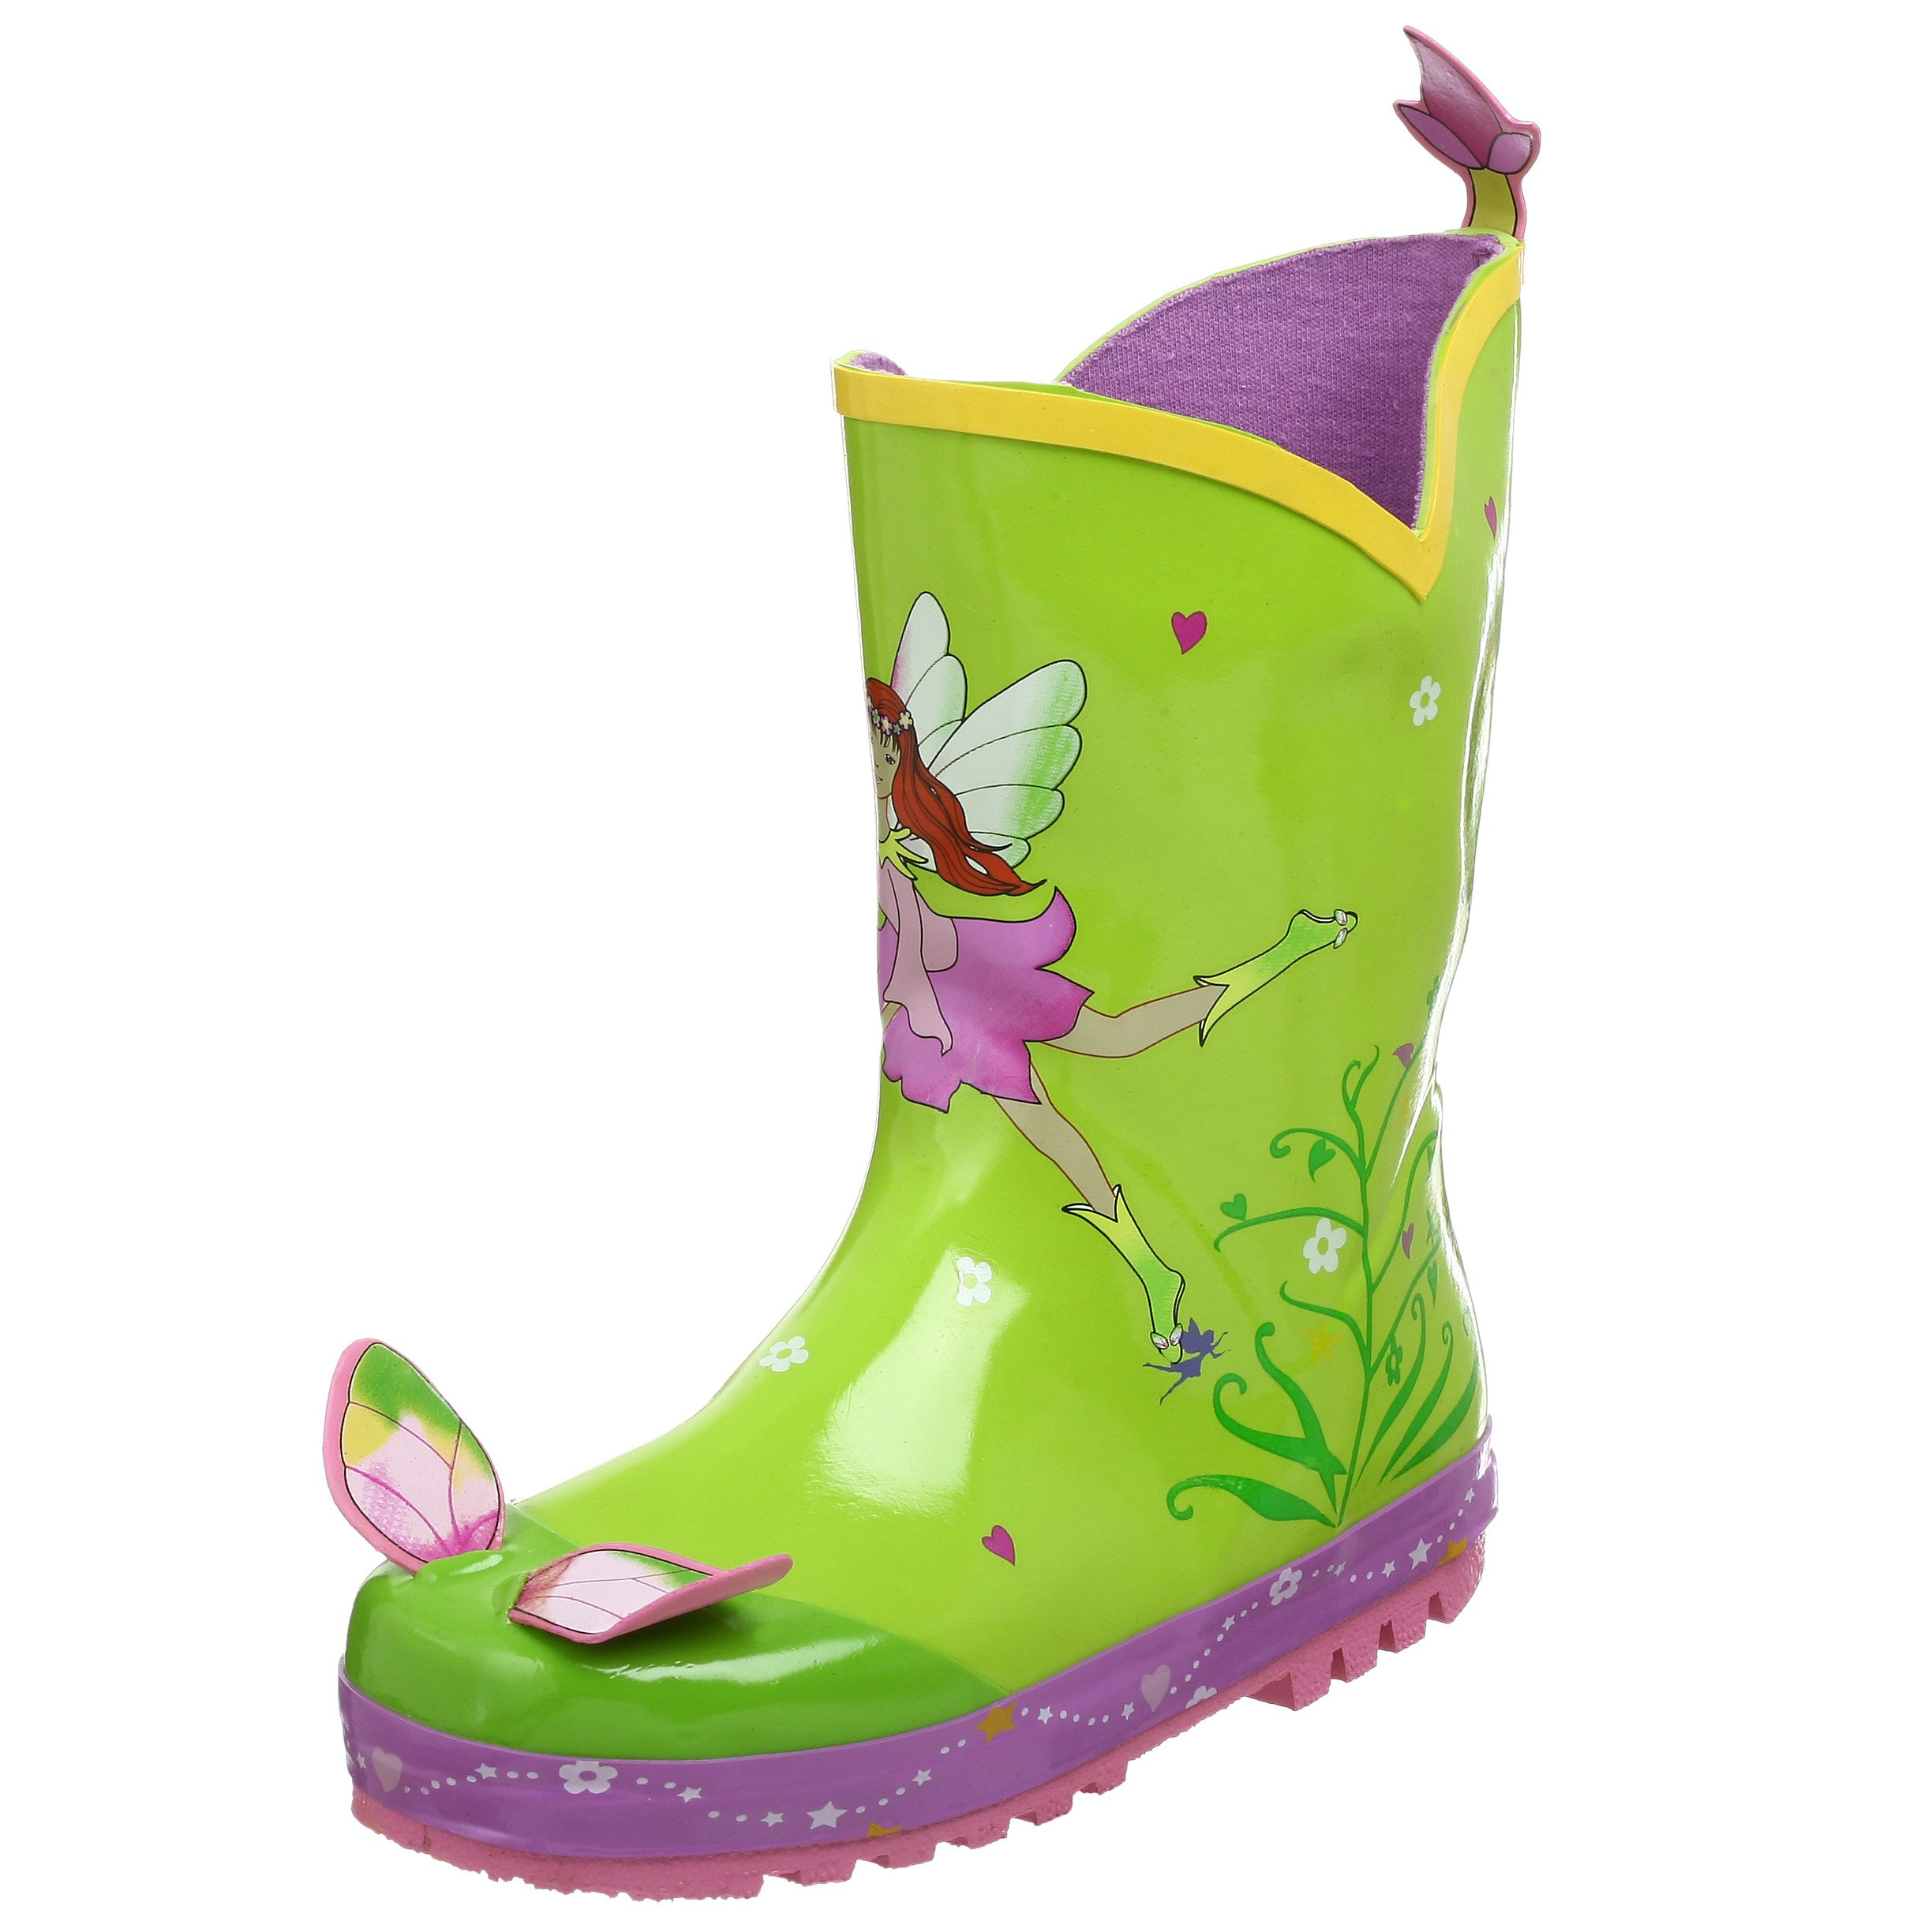 Kidorable Green Fairy Natural Rubber Rain Boots With Fun Flower Pull On Heel Tab (Big Kid), 2 M US